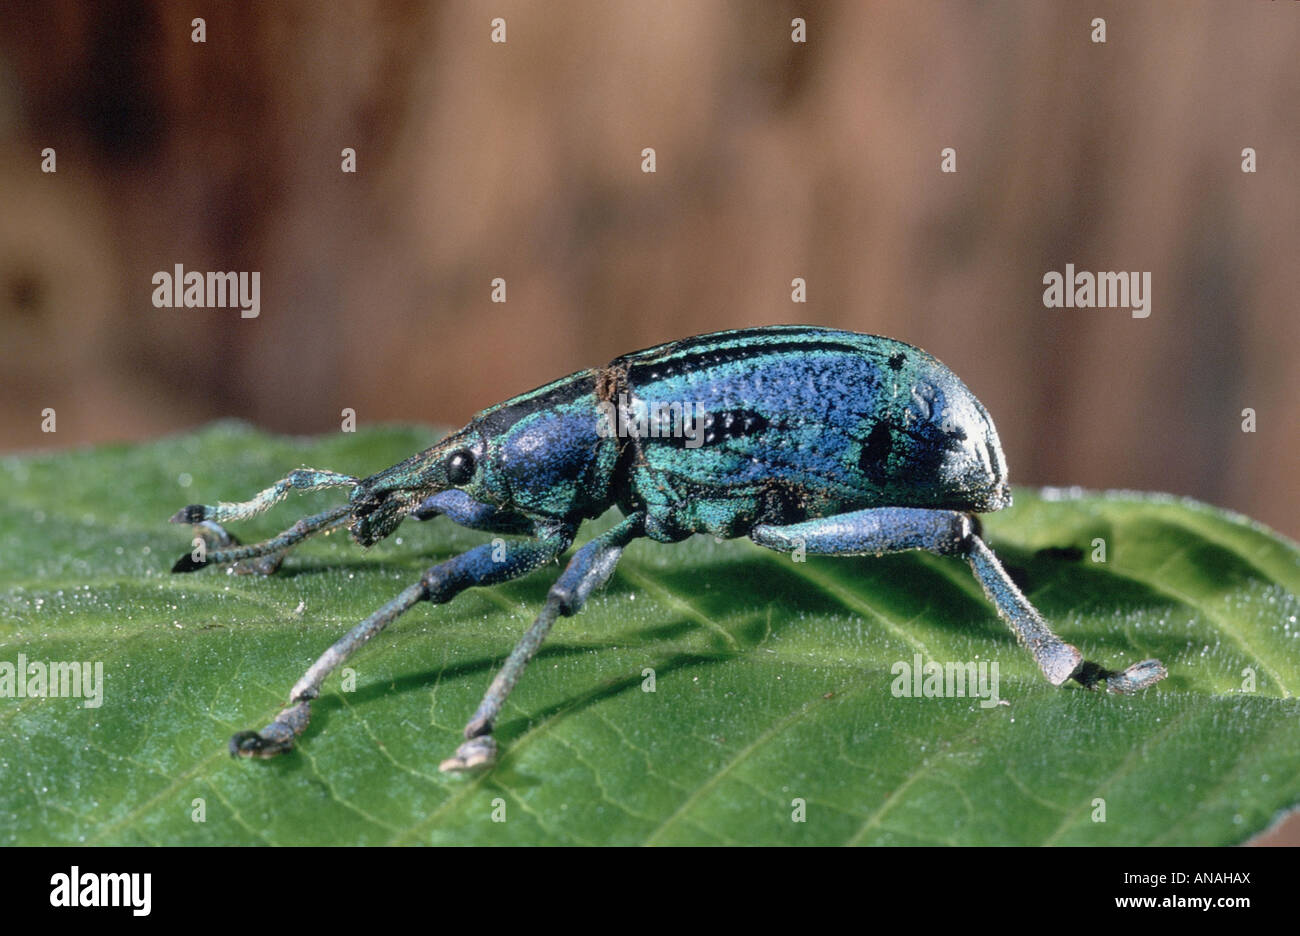 Bupholus (Bupholus spec.), sitting on a leaf, Neuguinea - Stock Image